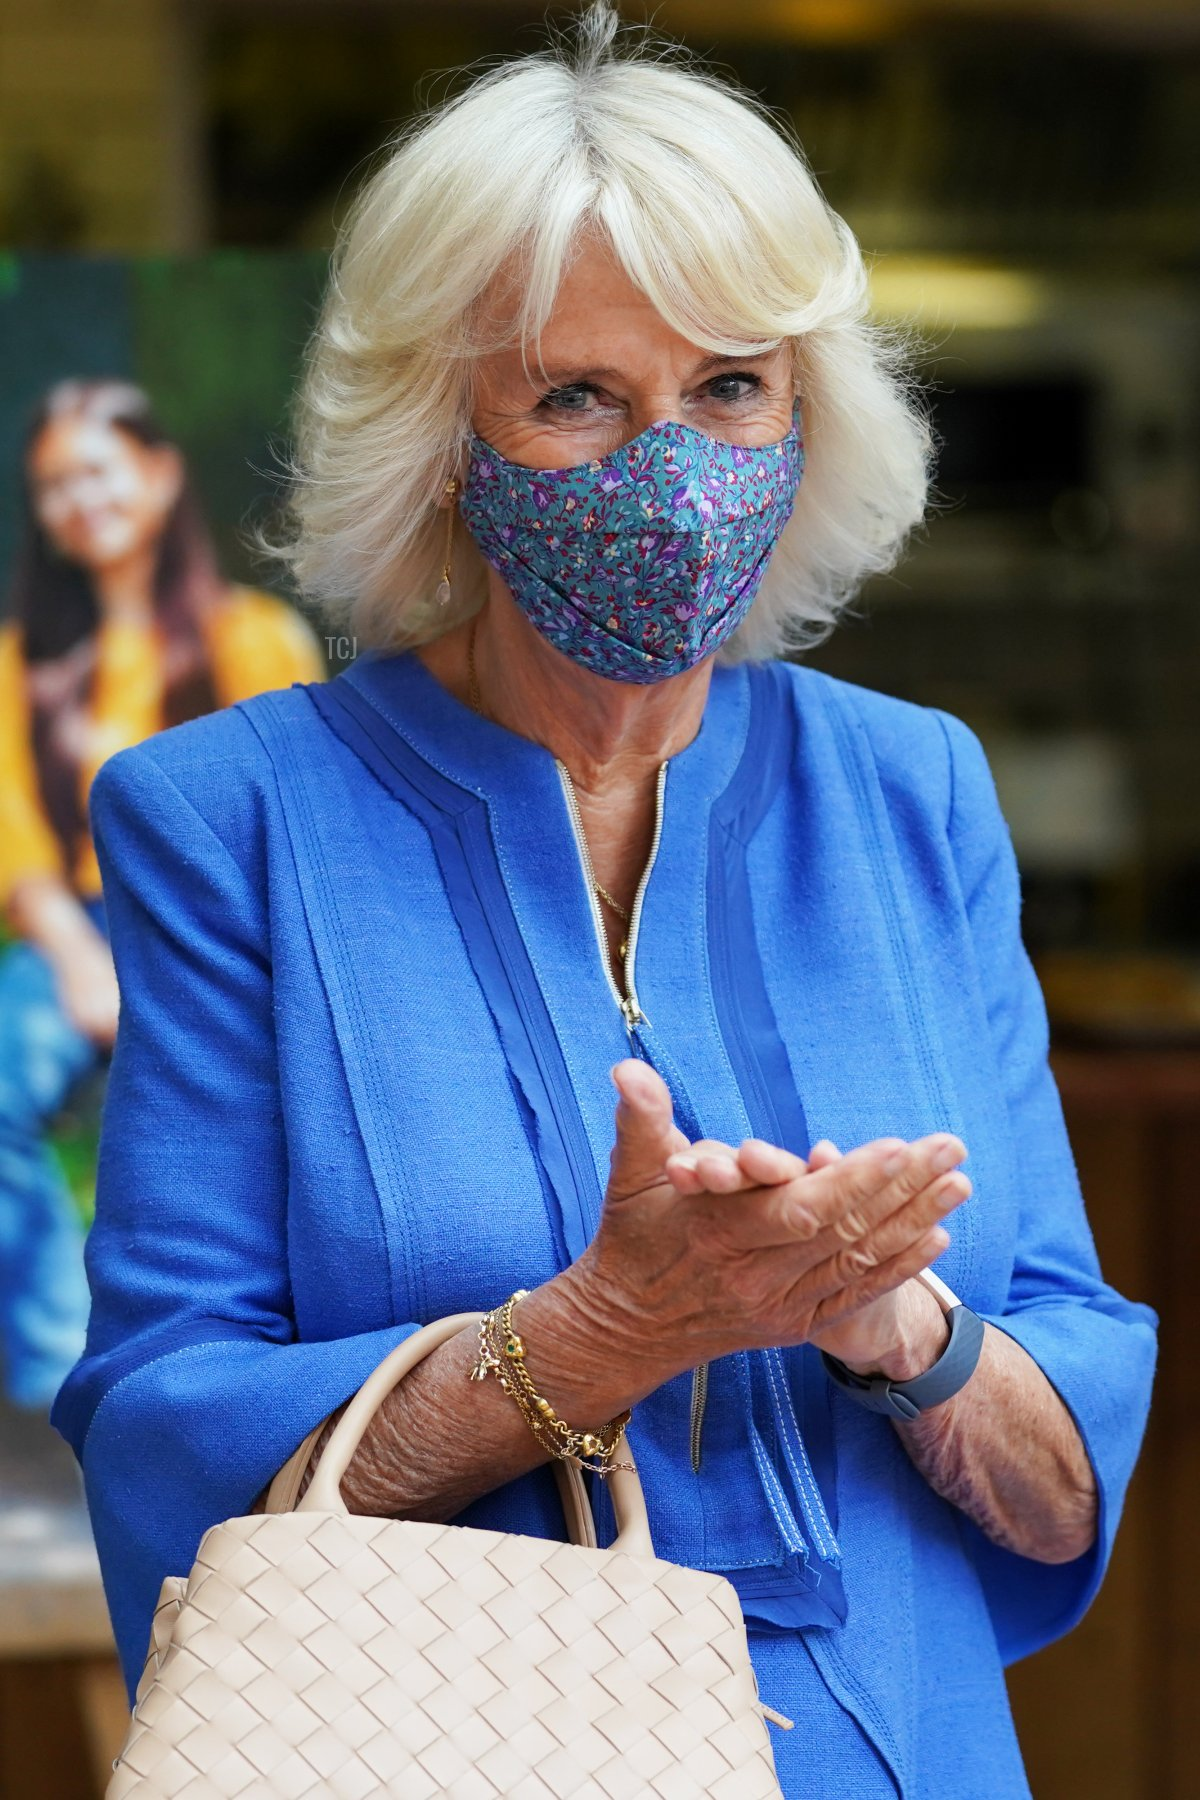 Camilla, Duchess of Cornwall, applauds a poetry recital during a visit to Booths Bookshop to meet with the organisers of the Hay Festival and tour independent shops and local businesses, as part of a week long tour of Wales for Wales Week, on July 6, 2021